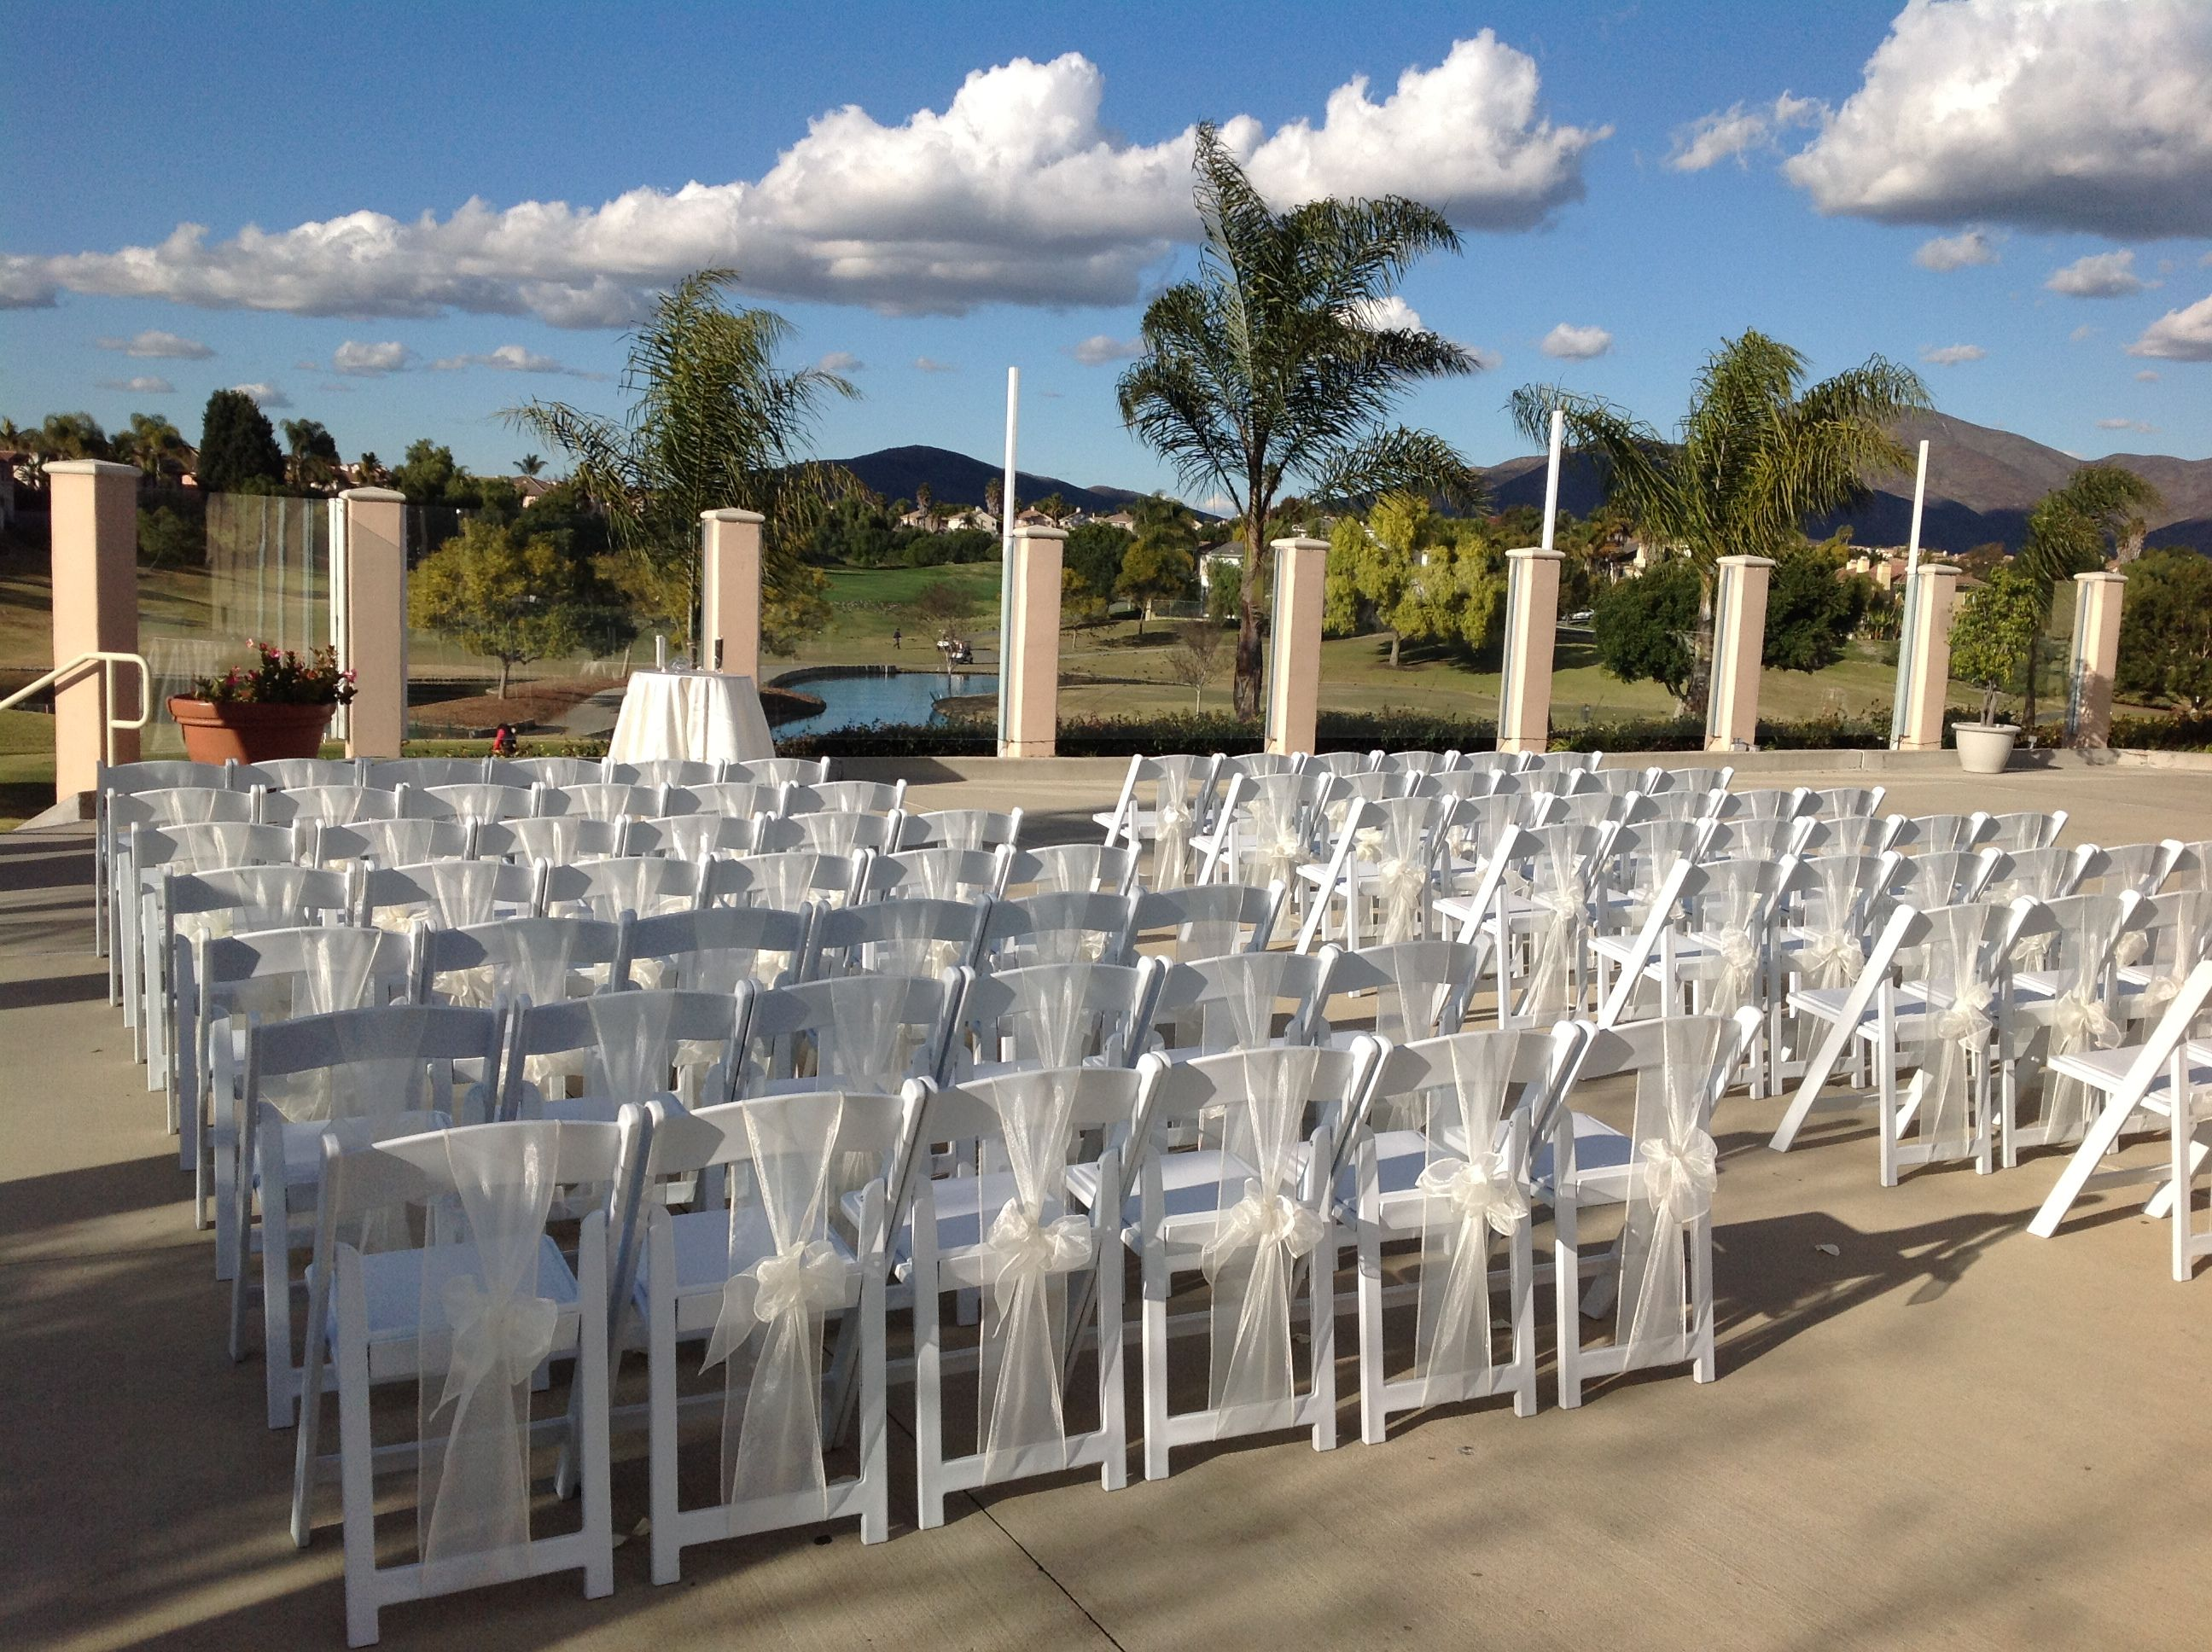 Terrific Ceremony Set Up Of White Resin Folding Chairs With A Padded Squirreltailoven Fun Painted Chair Ideas Images Squirreltailovenorg